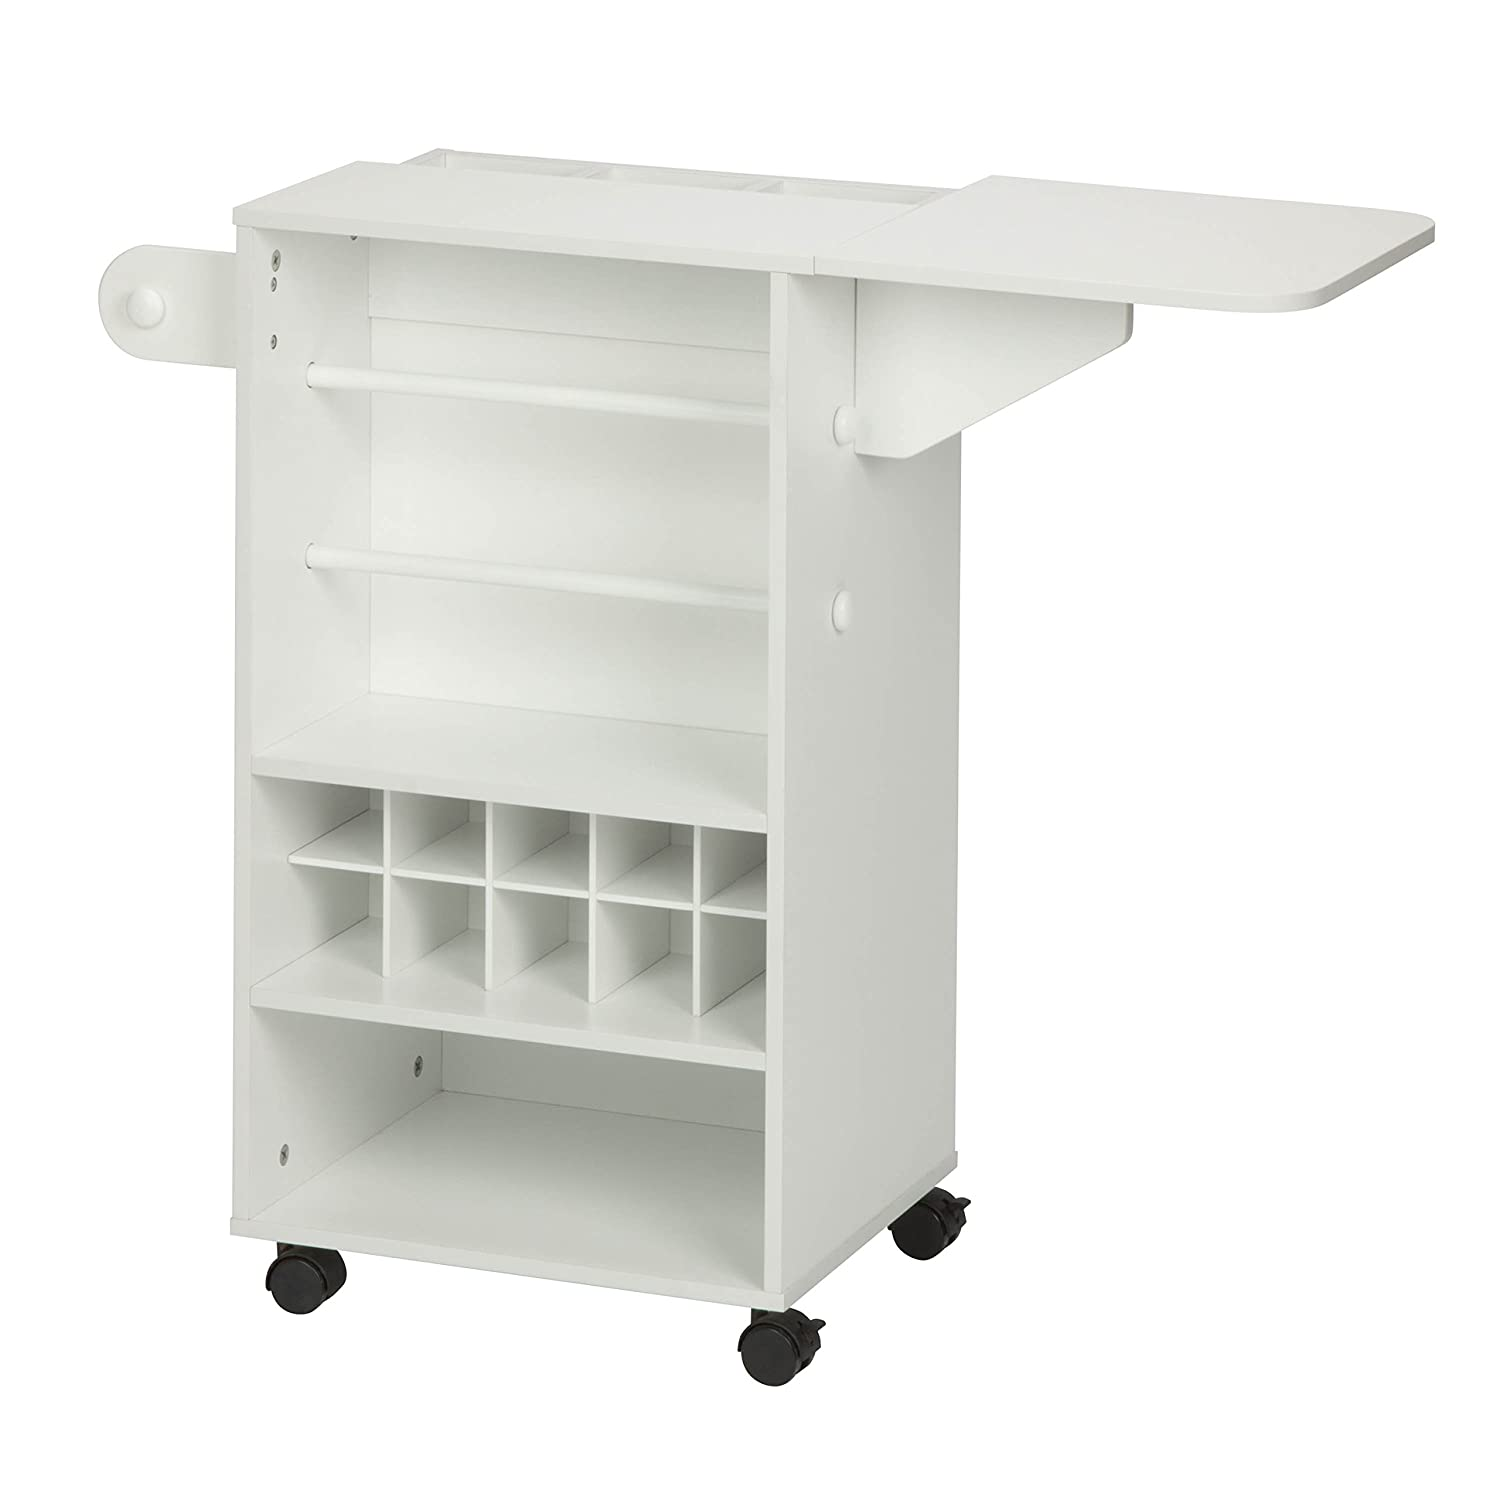 drawer cheap cart deals get guides drawers find wide plastic shopping quotations on storage black